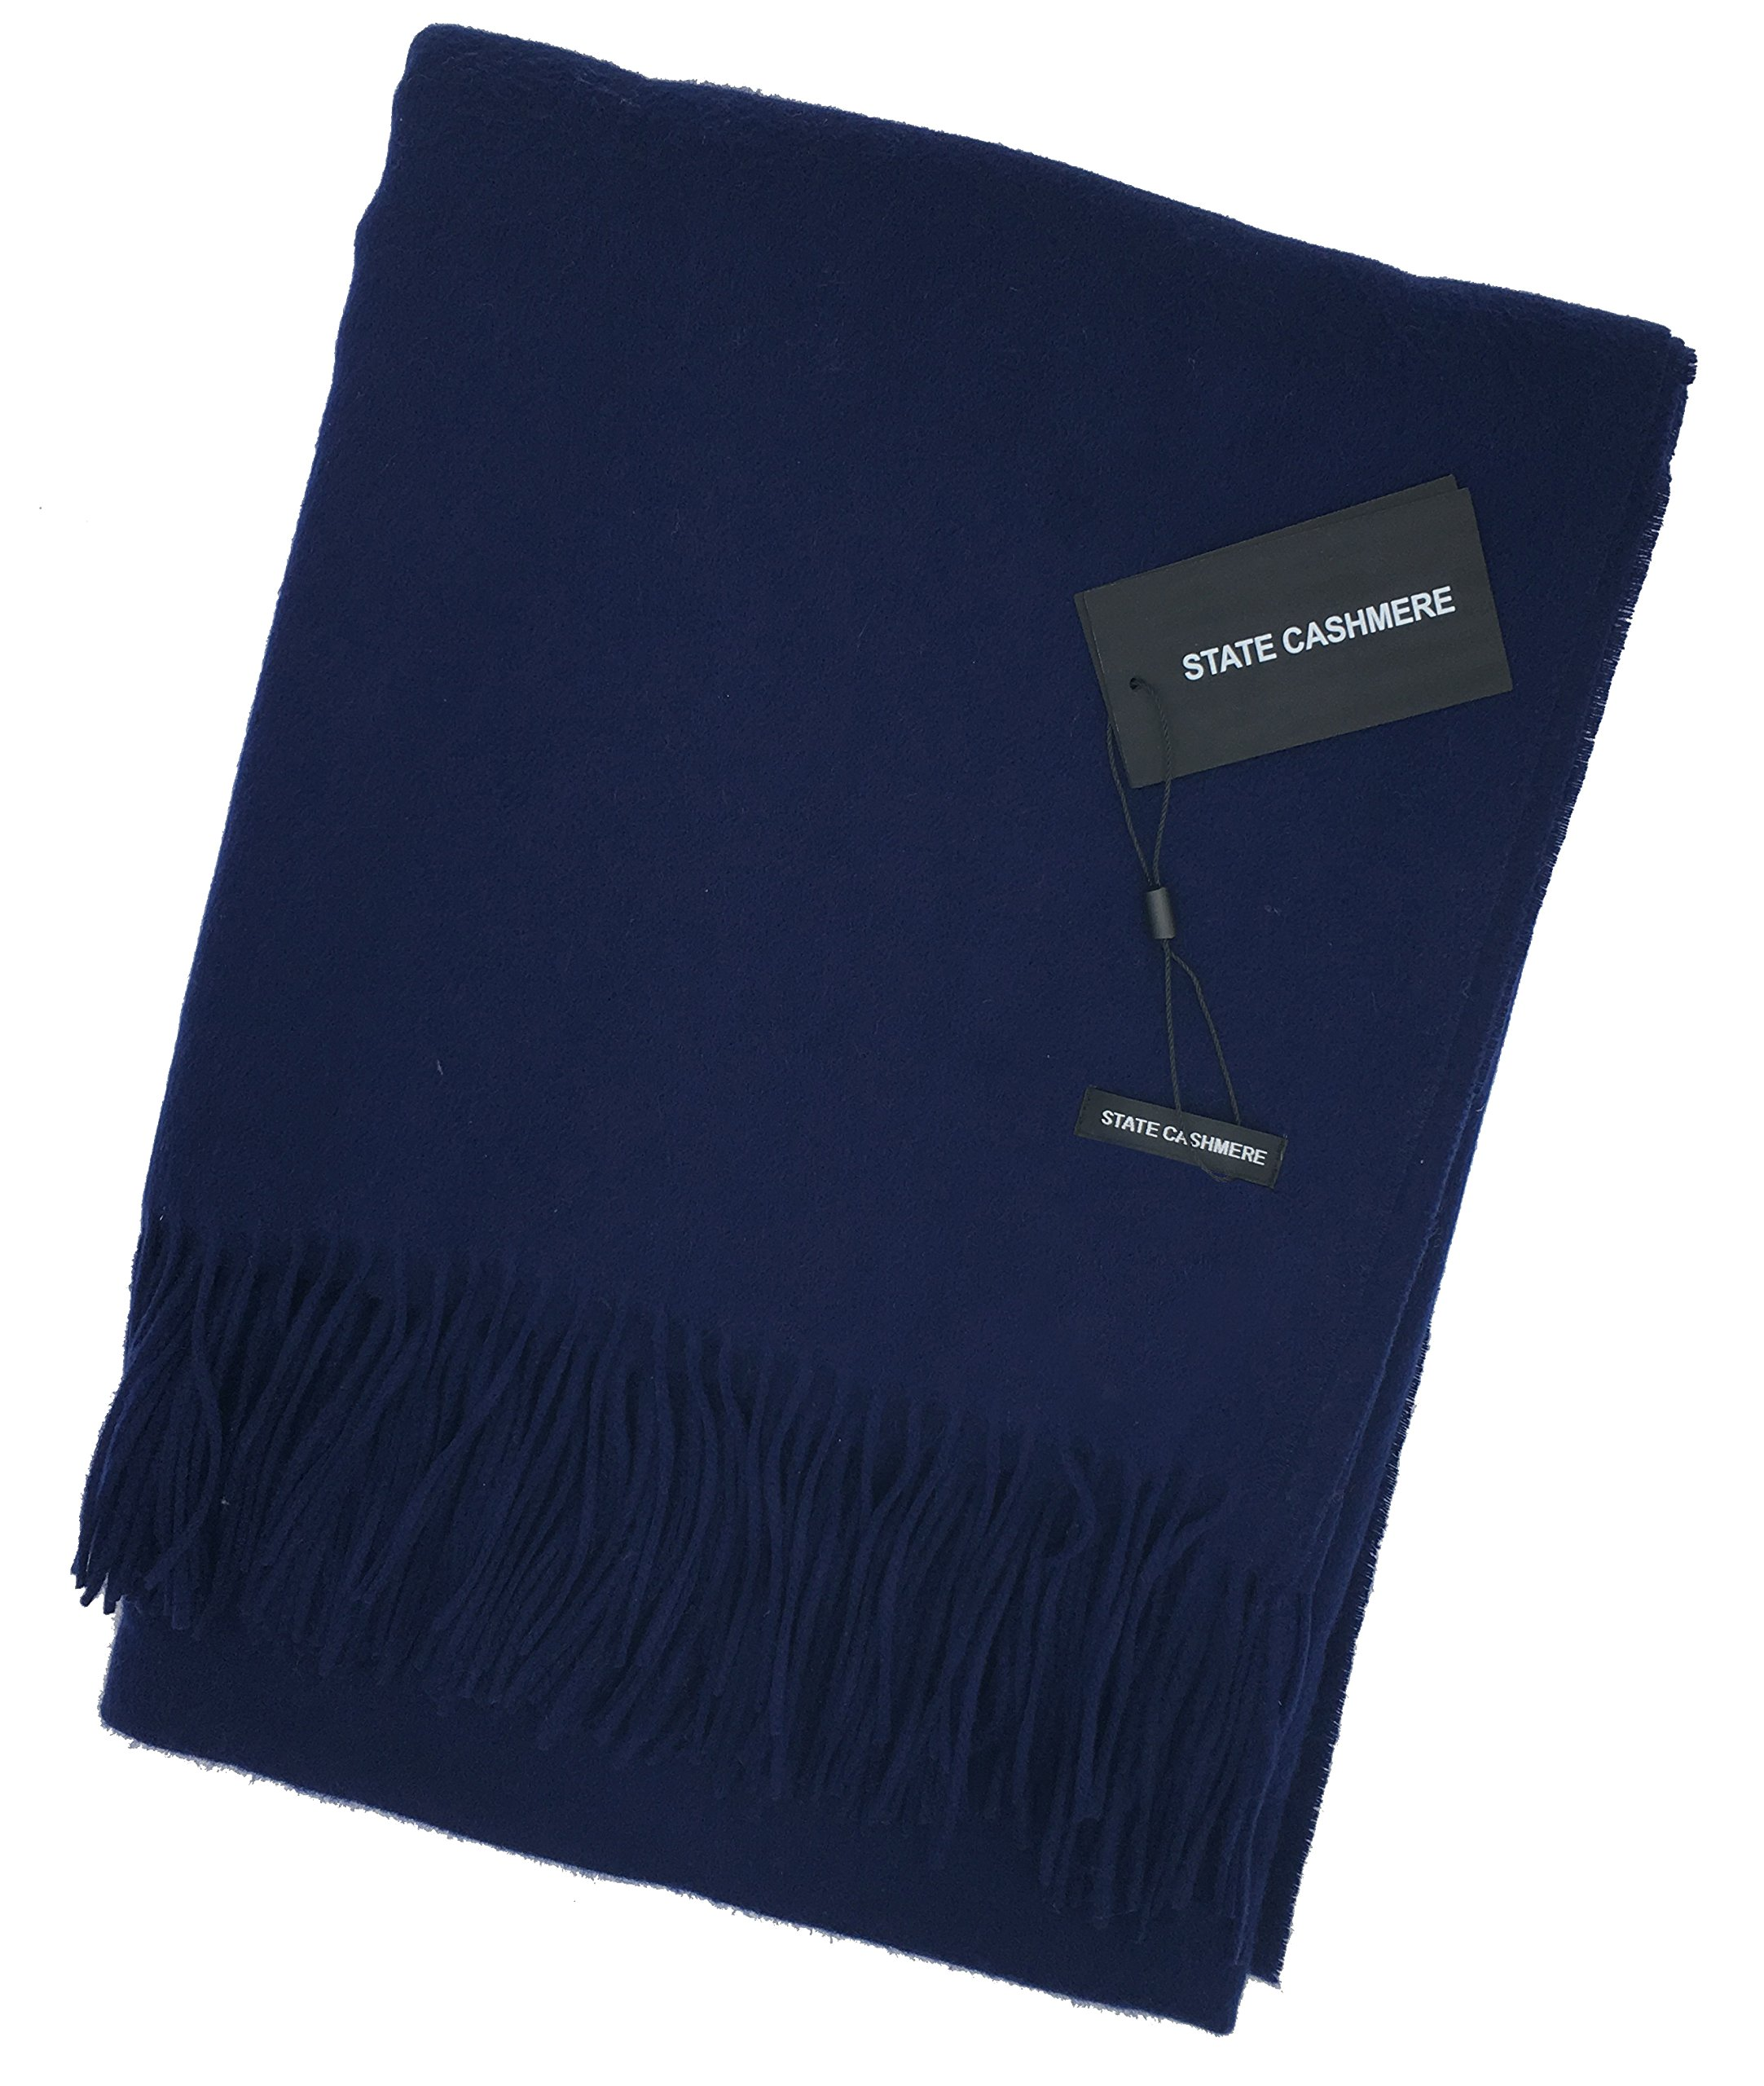 State Cashmere 100% Pure Cashmere Fringe Throw Blanket - 60'' x 50'',Ultimate Soft and Cozy, Navy one size